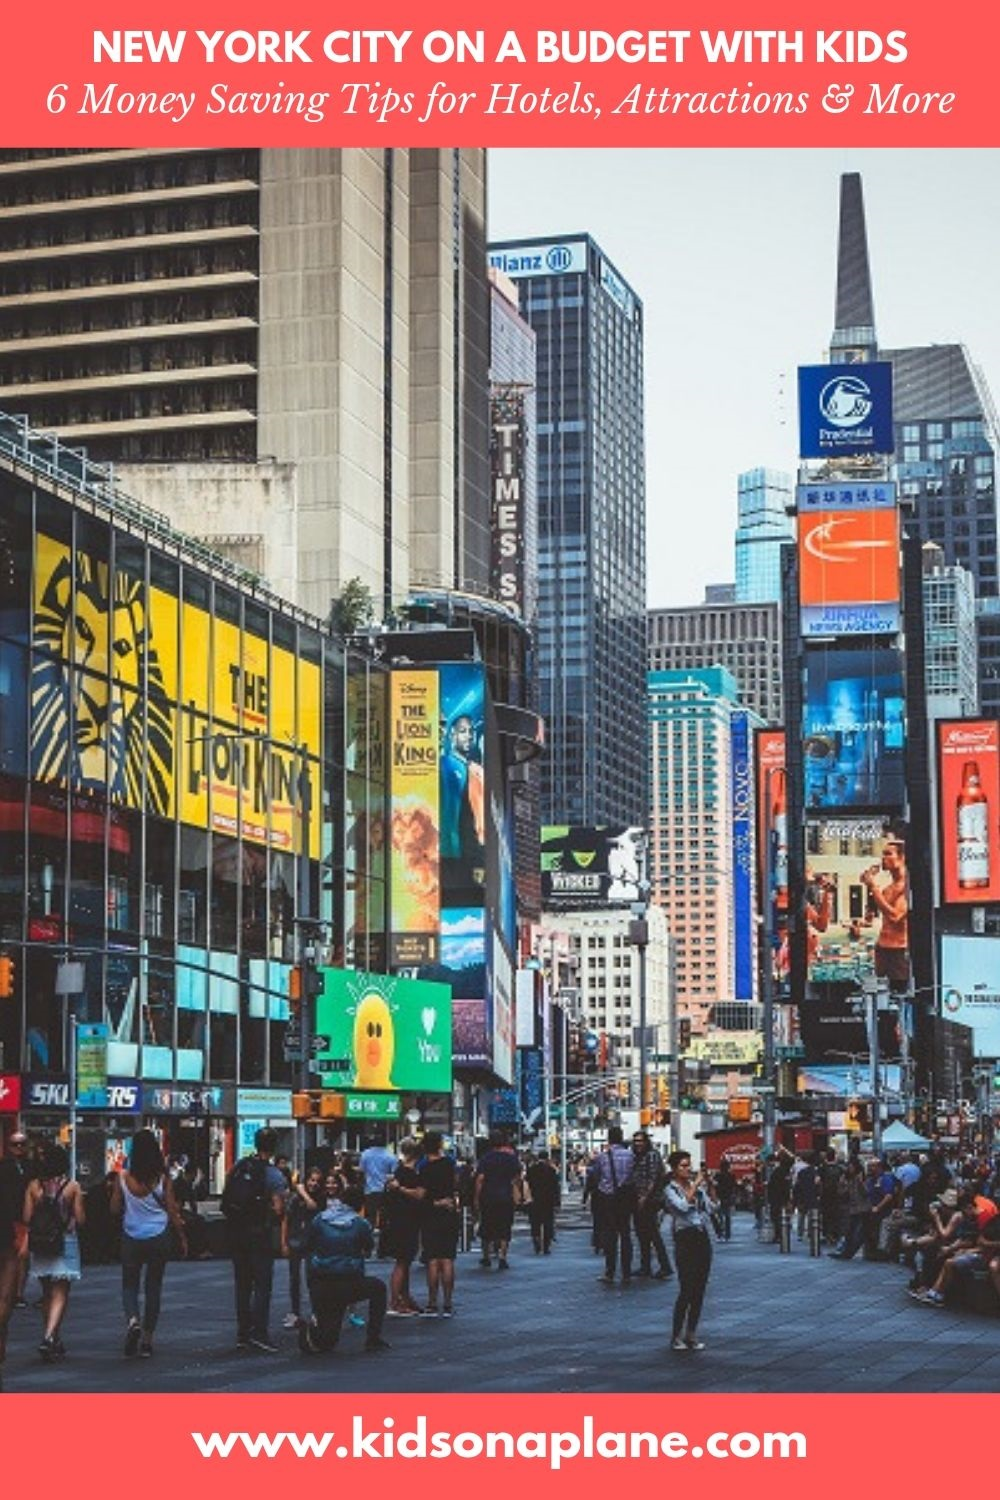 New York City with Kids Budget Travel Tips - 6 Simple Ways to Save Money